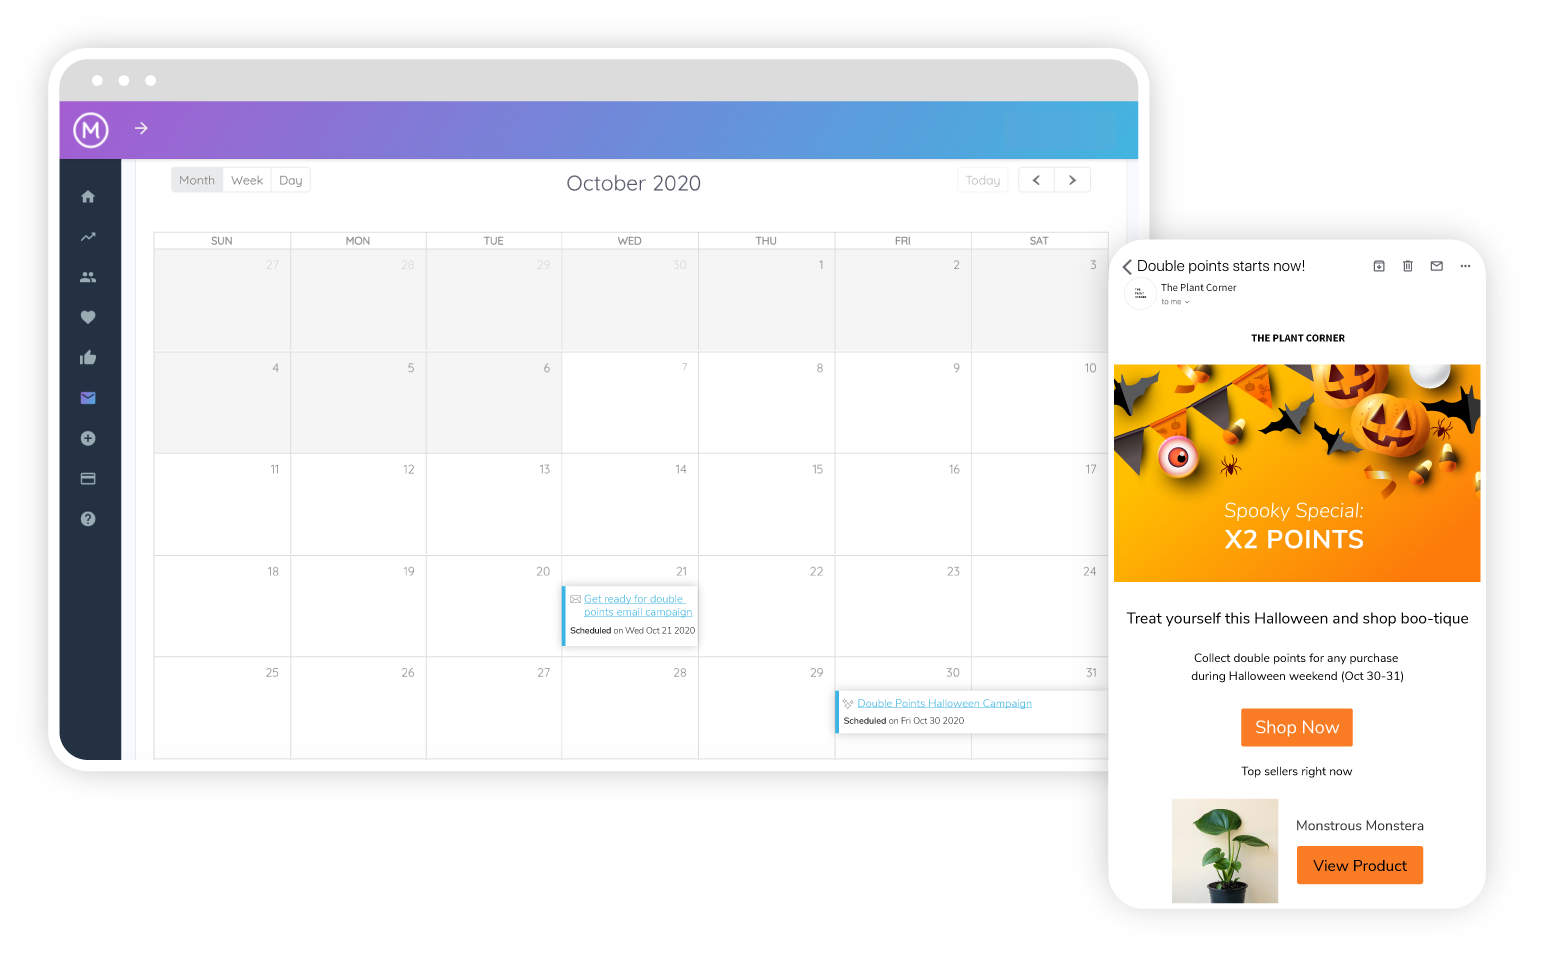 Marsello marketing calendar with halloween promotions scheduled.